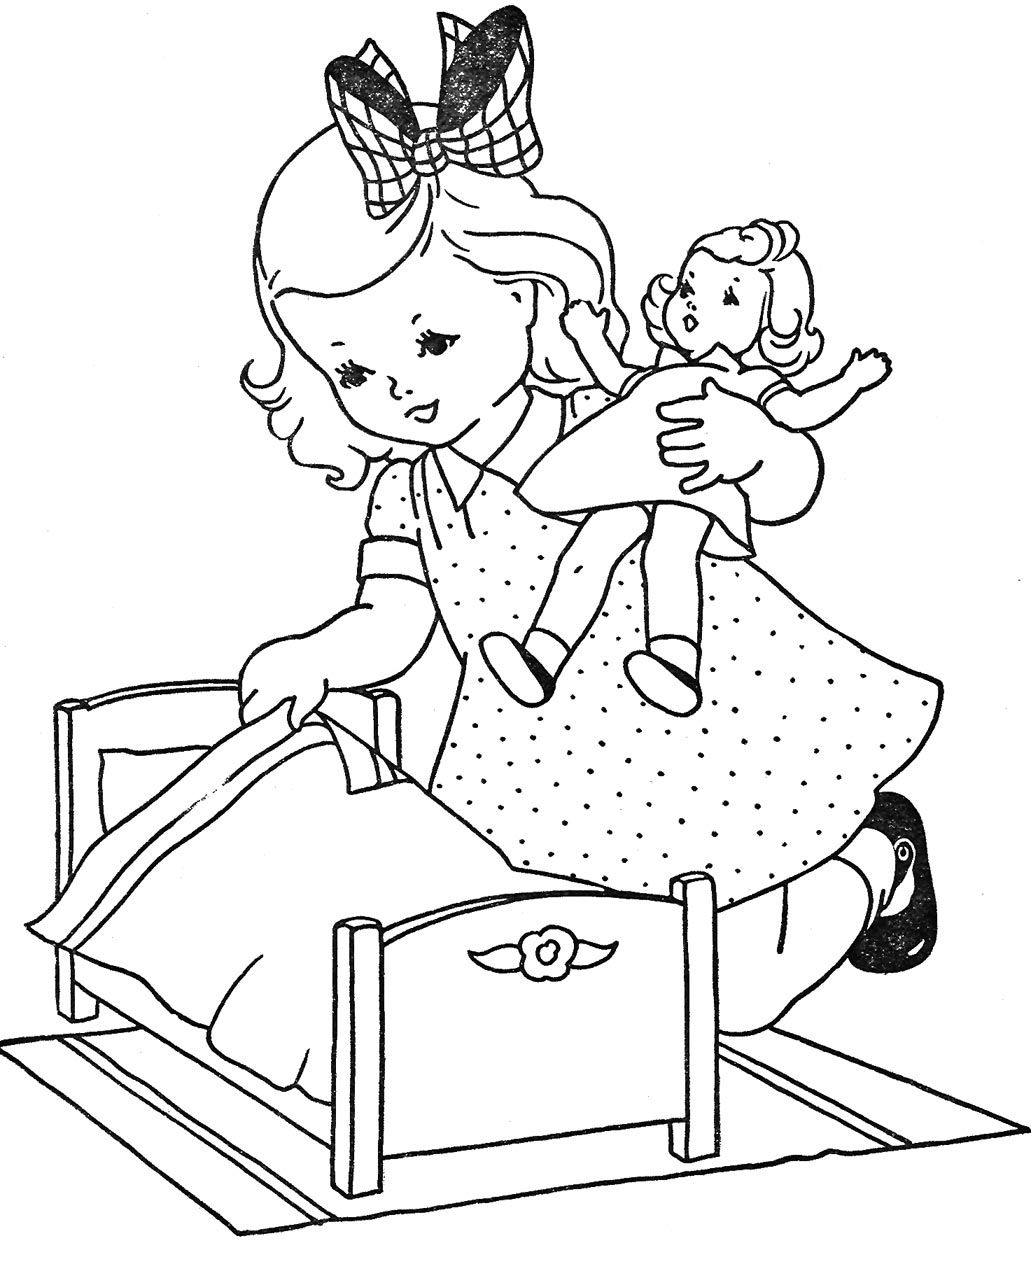 baby doll coloring pages free printable baby doll coloring pages coloring home doll coloring pages baby